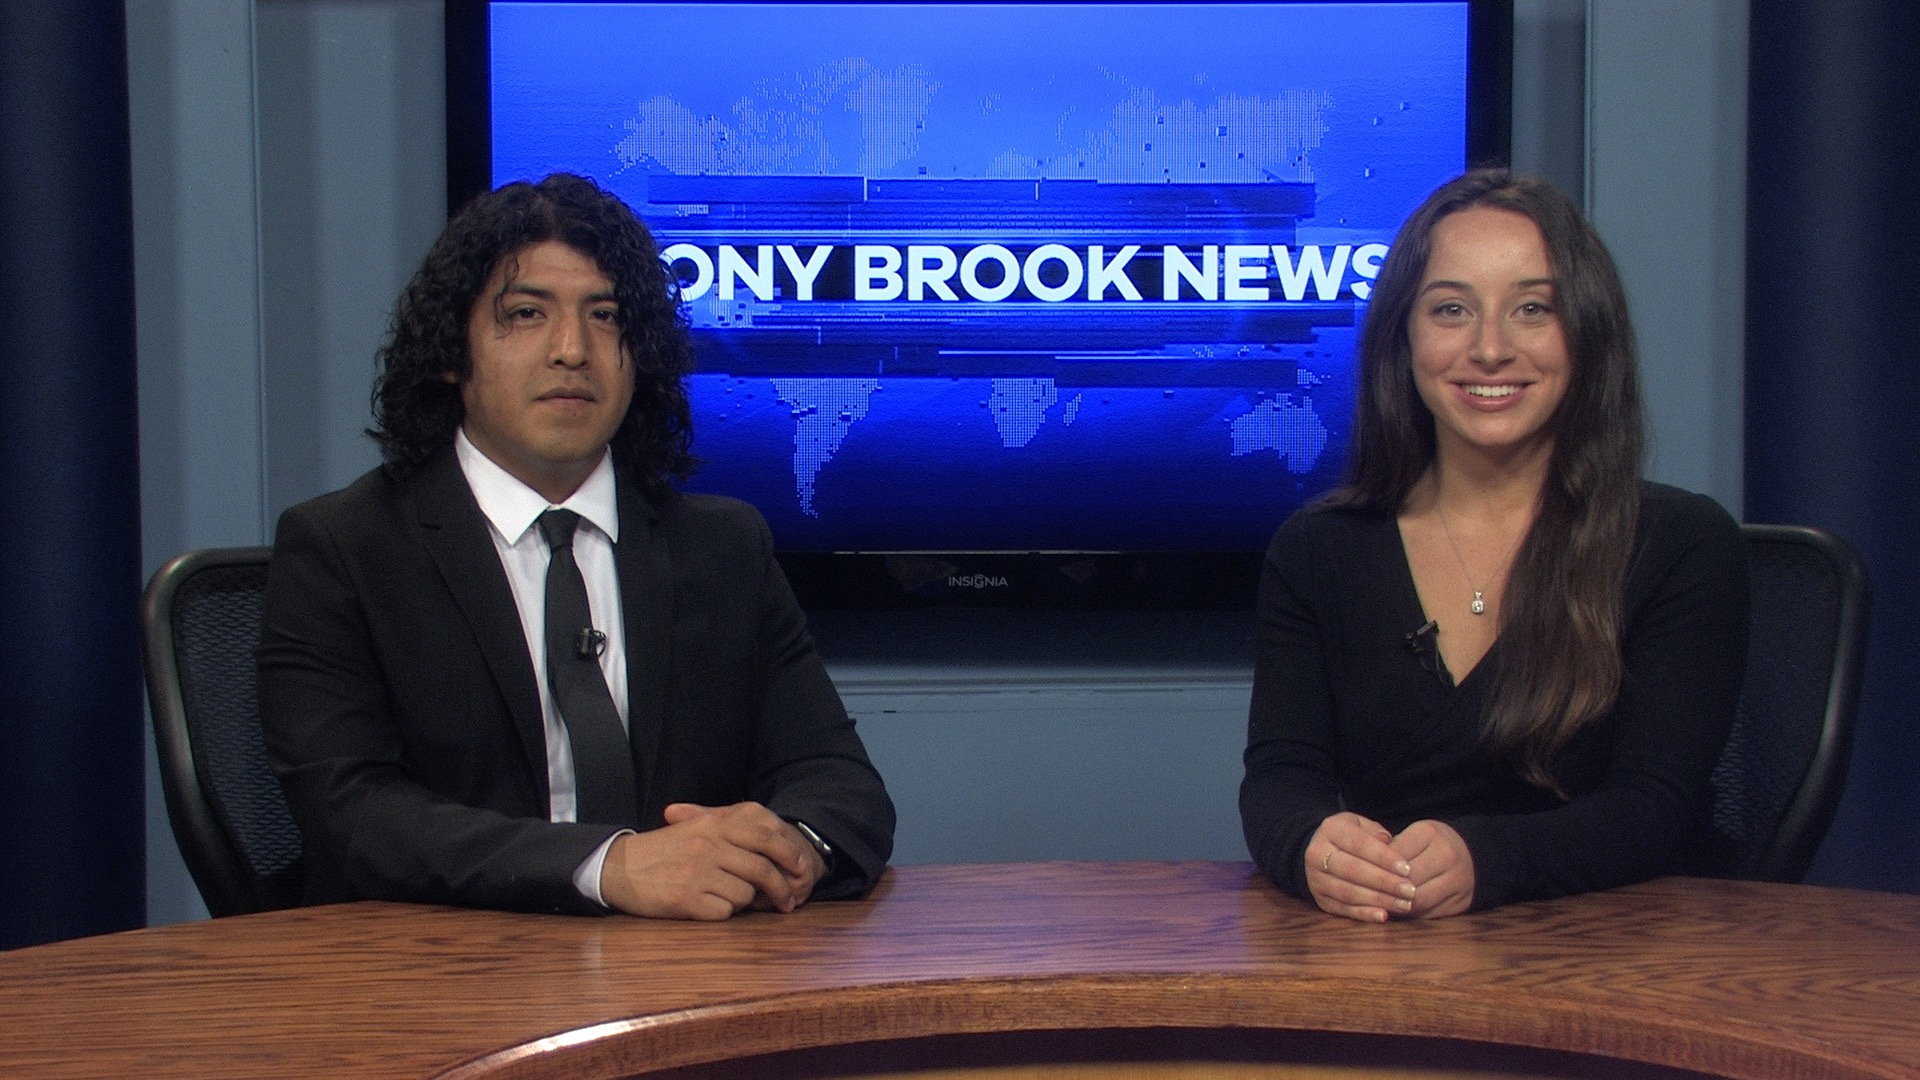 Stony Brook News – April 8, 2019